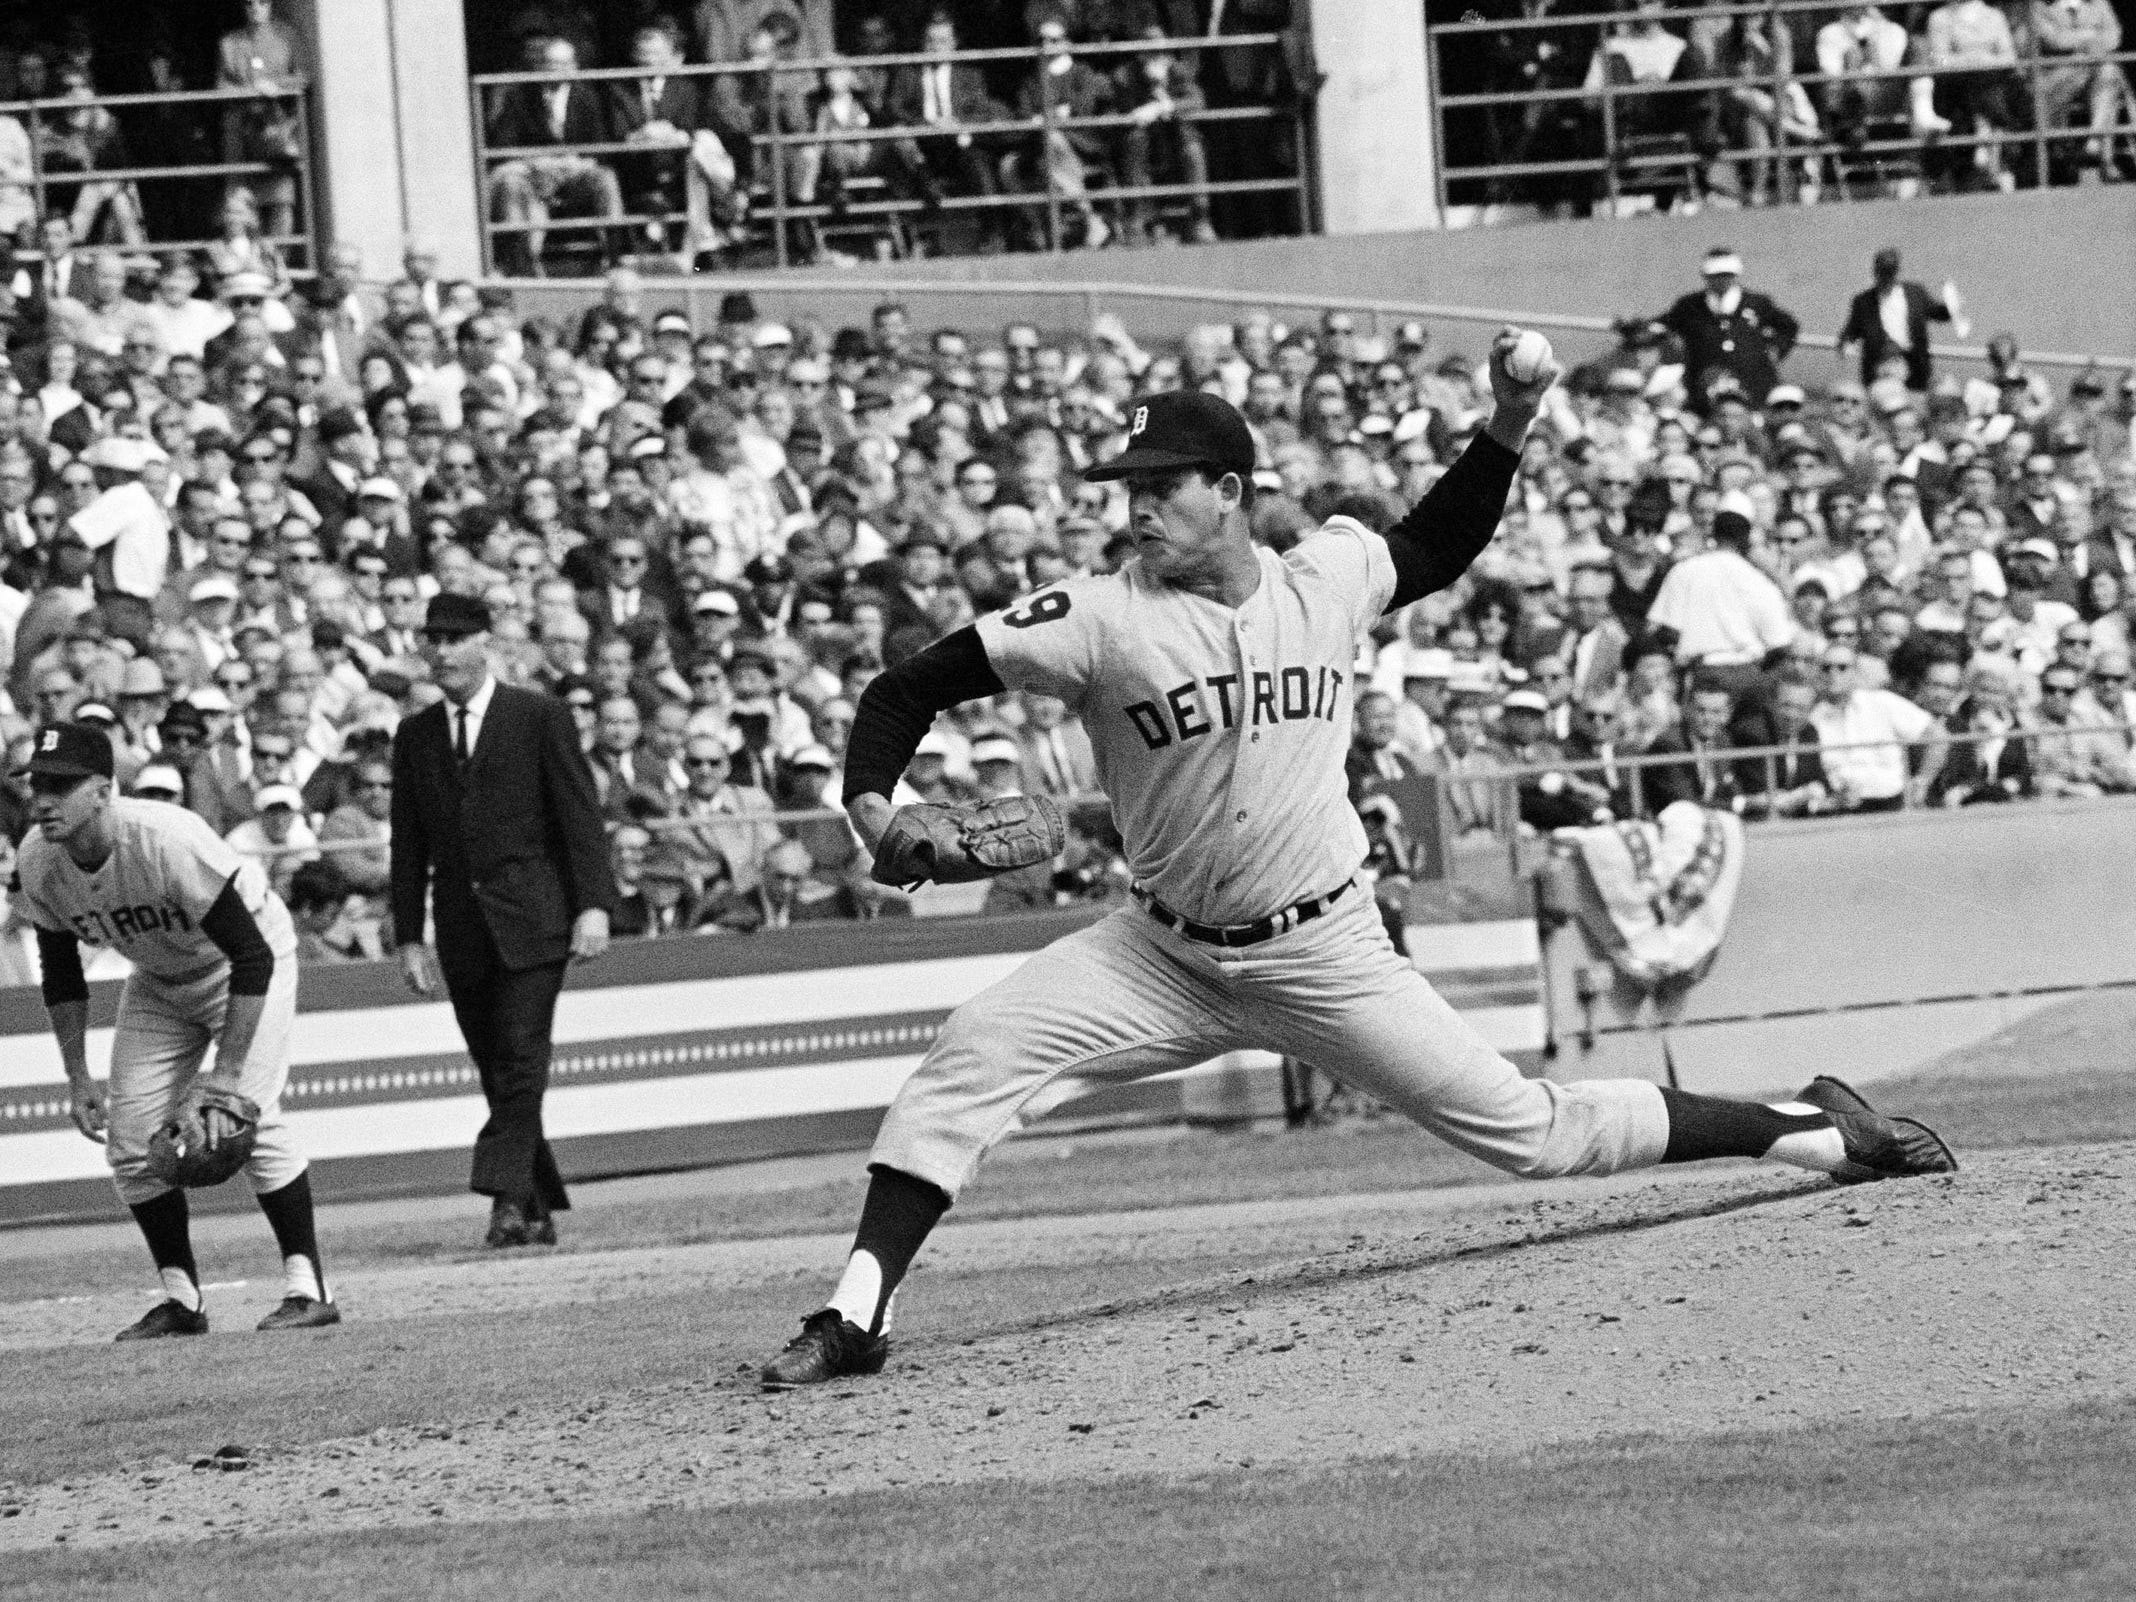 Mickey Lolich of the Detroit Tigers is shown pitching during the second game of the World Series against the St. Louis Cardinals at Busch Stadium in St. Louis, Oct. 3, 1968. Lolich hit the first homer of his career in the third inning.